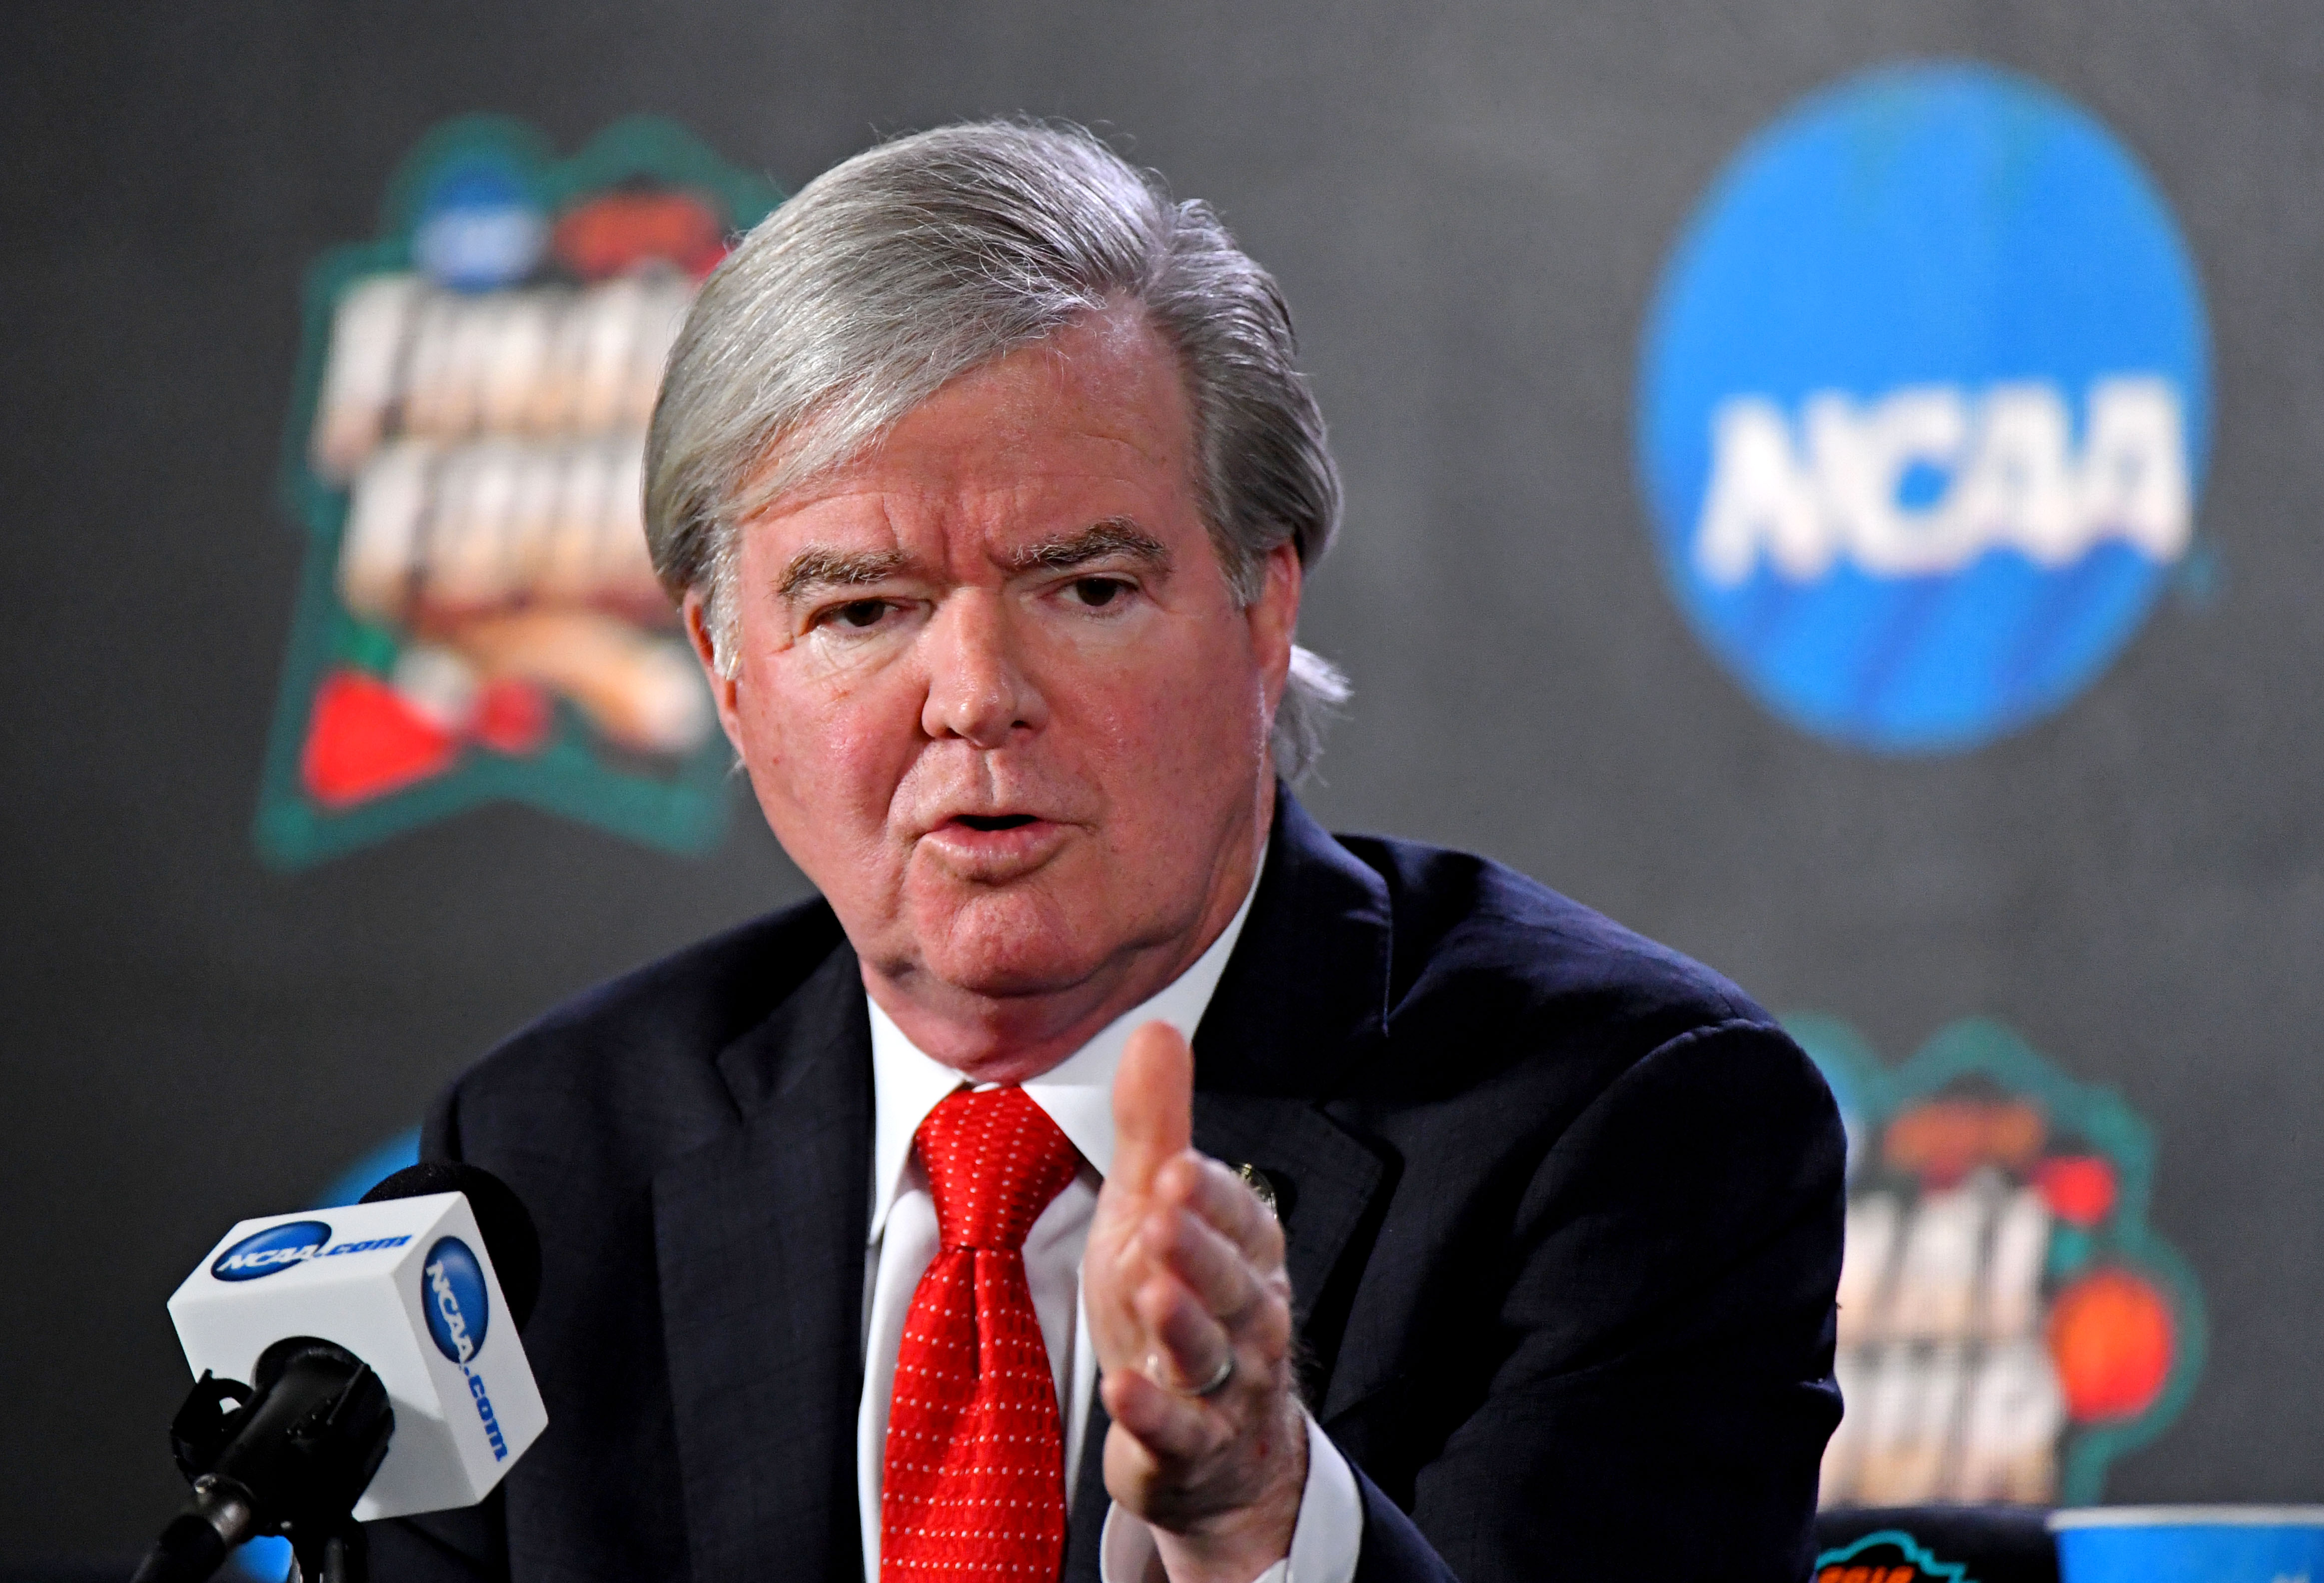 Here are 5 major recommendations from the Commission on College Basketball